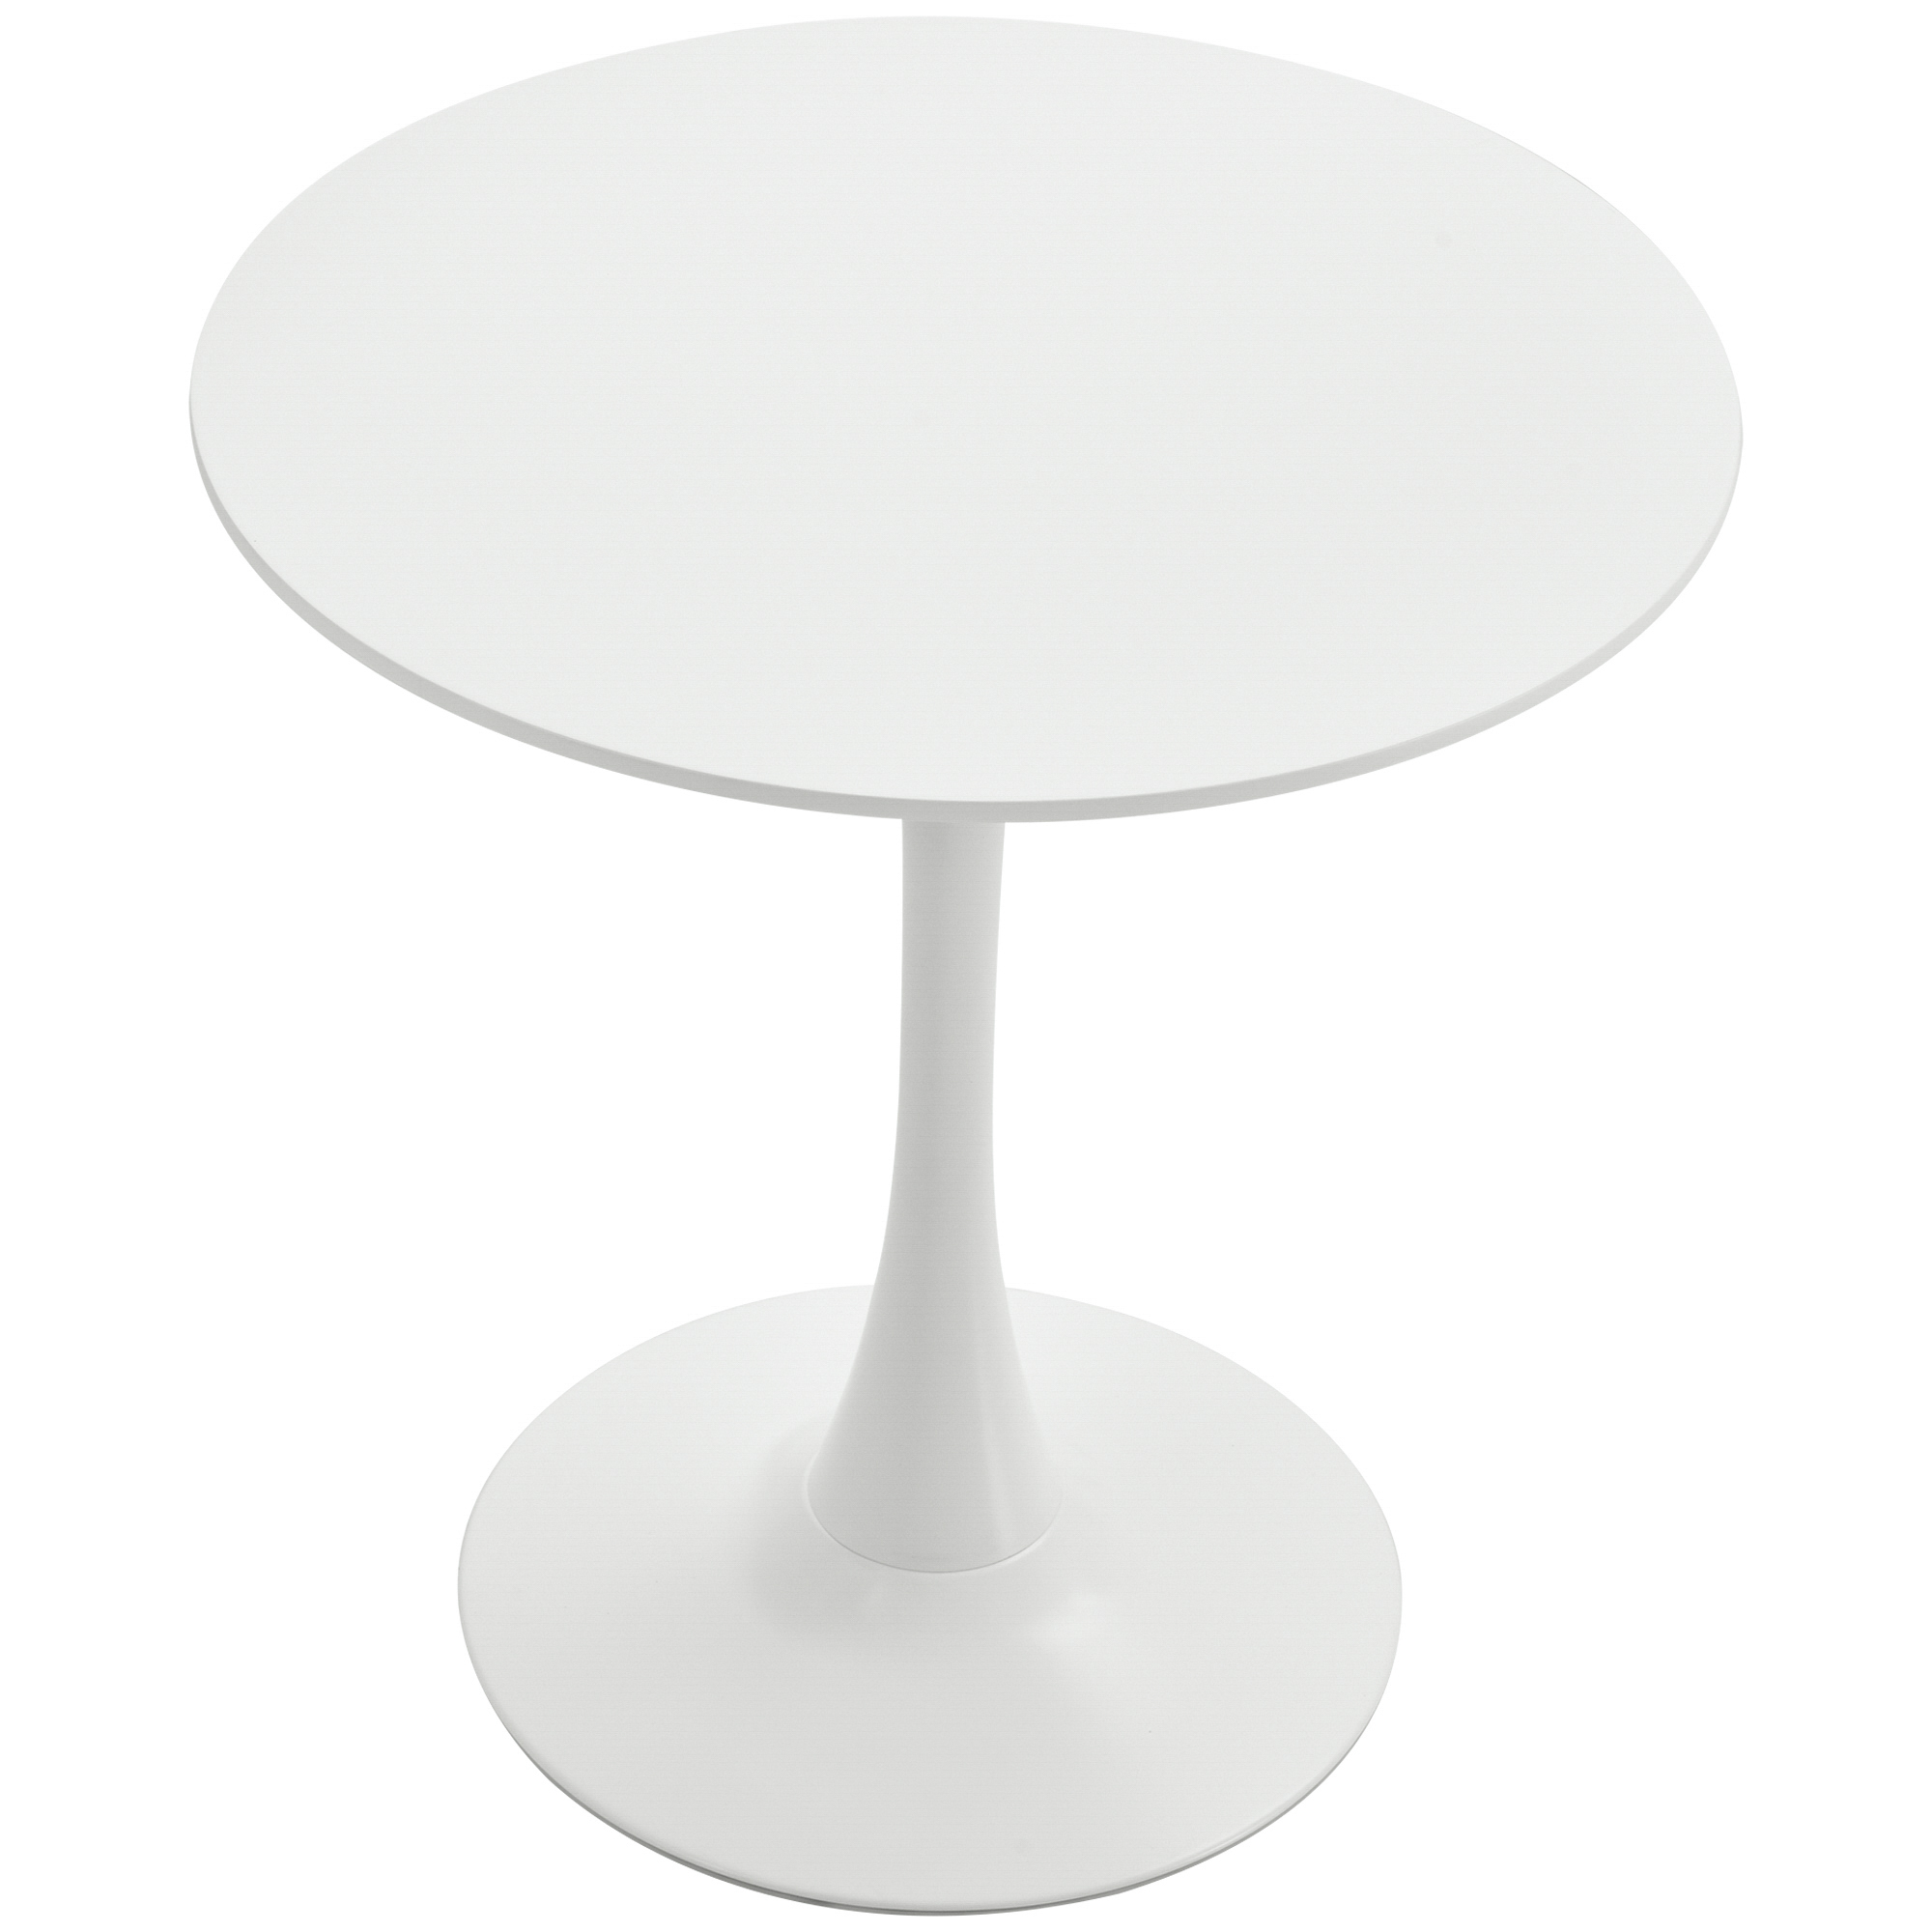 Homcom Masa de Cocktail Rotunda Minimal cu Baza din Metal Alb D70 x 73 cm imagine aosom.ro